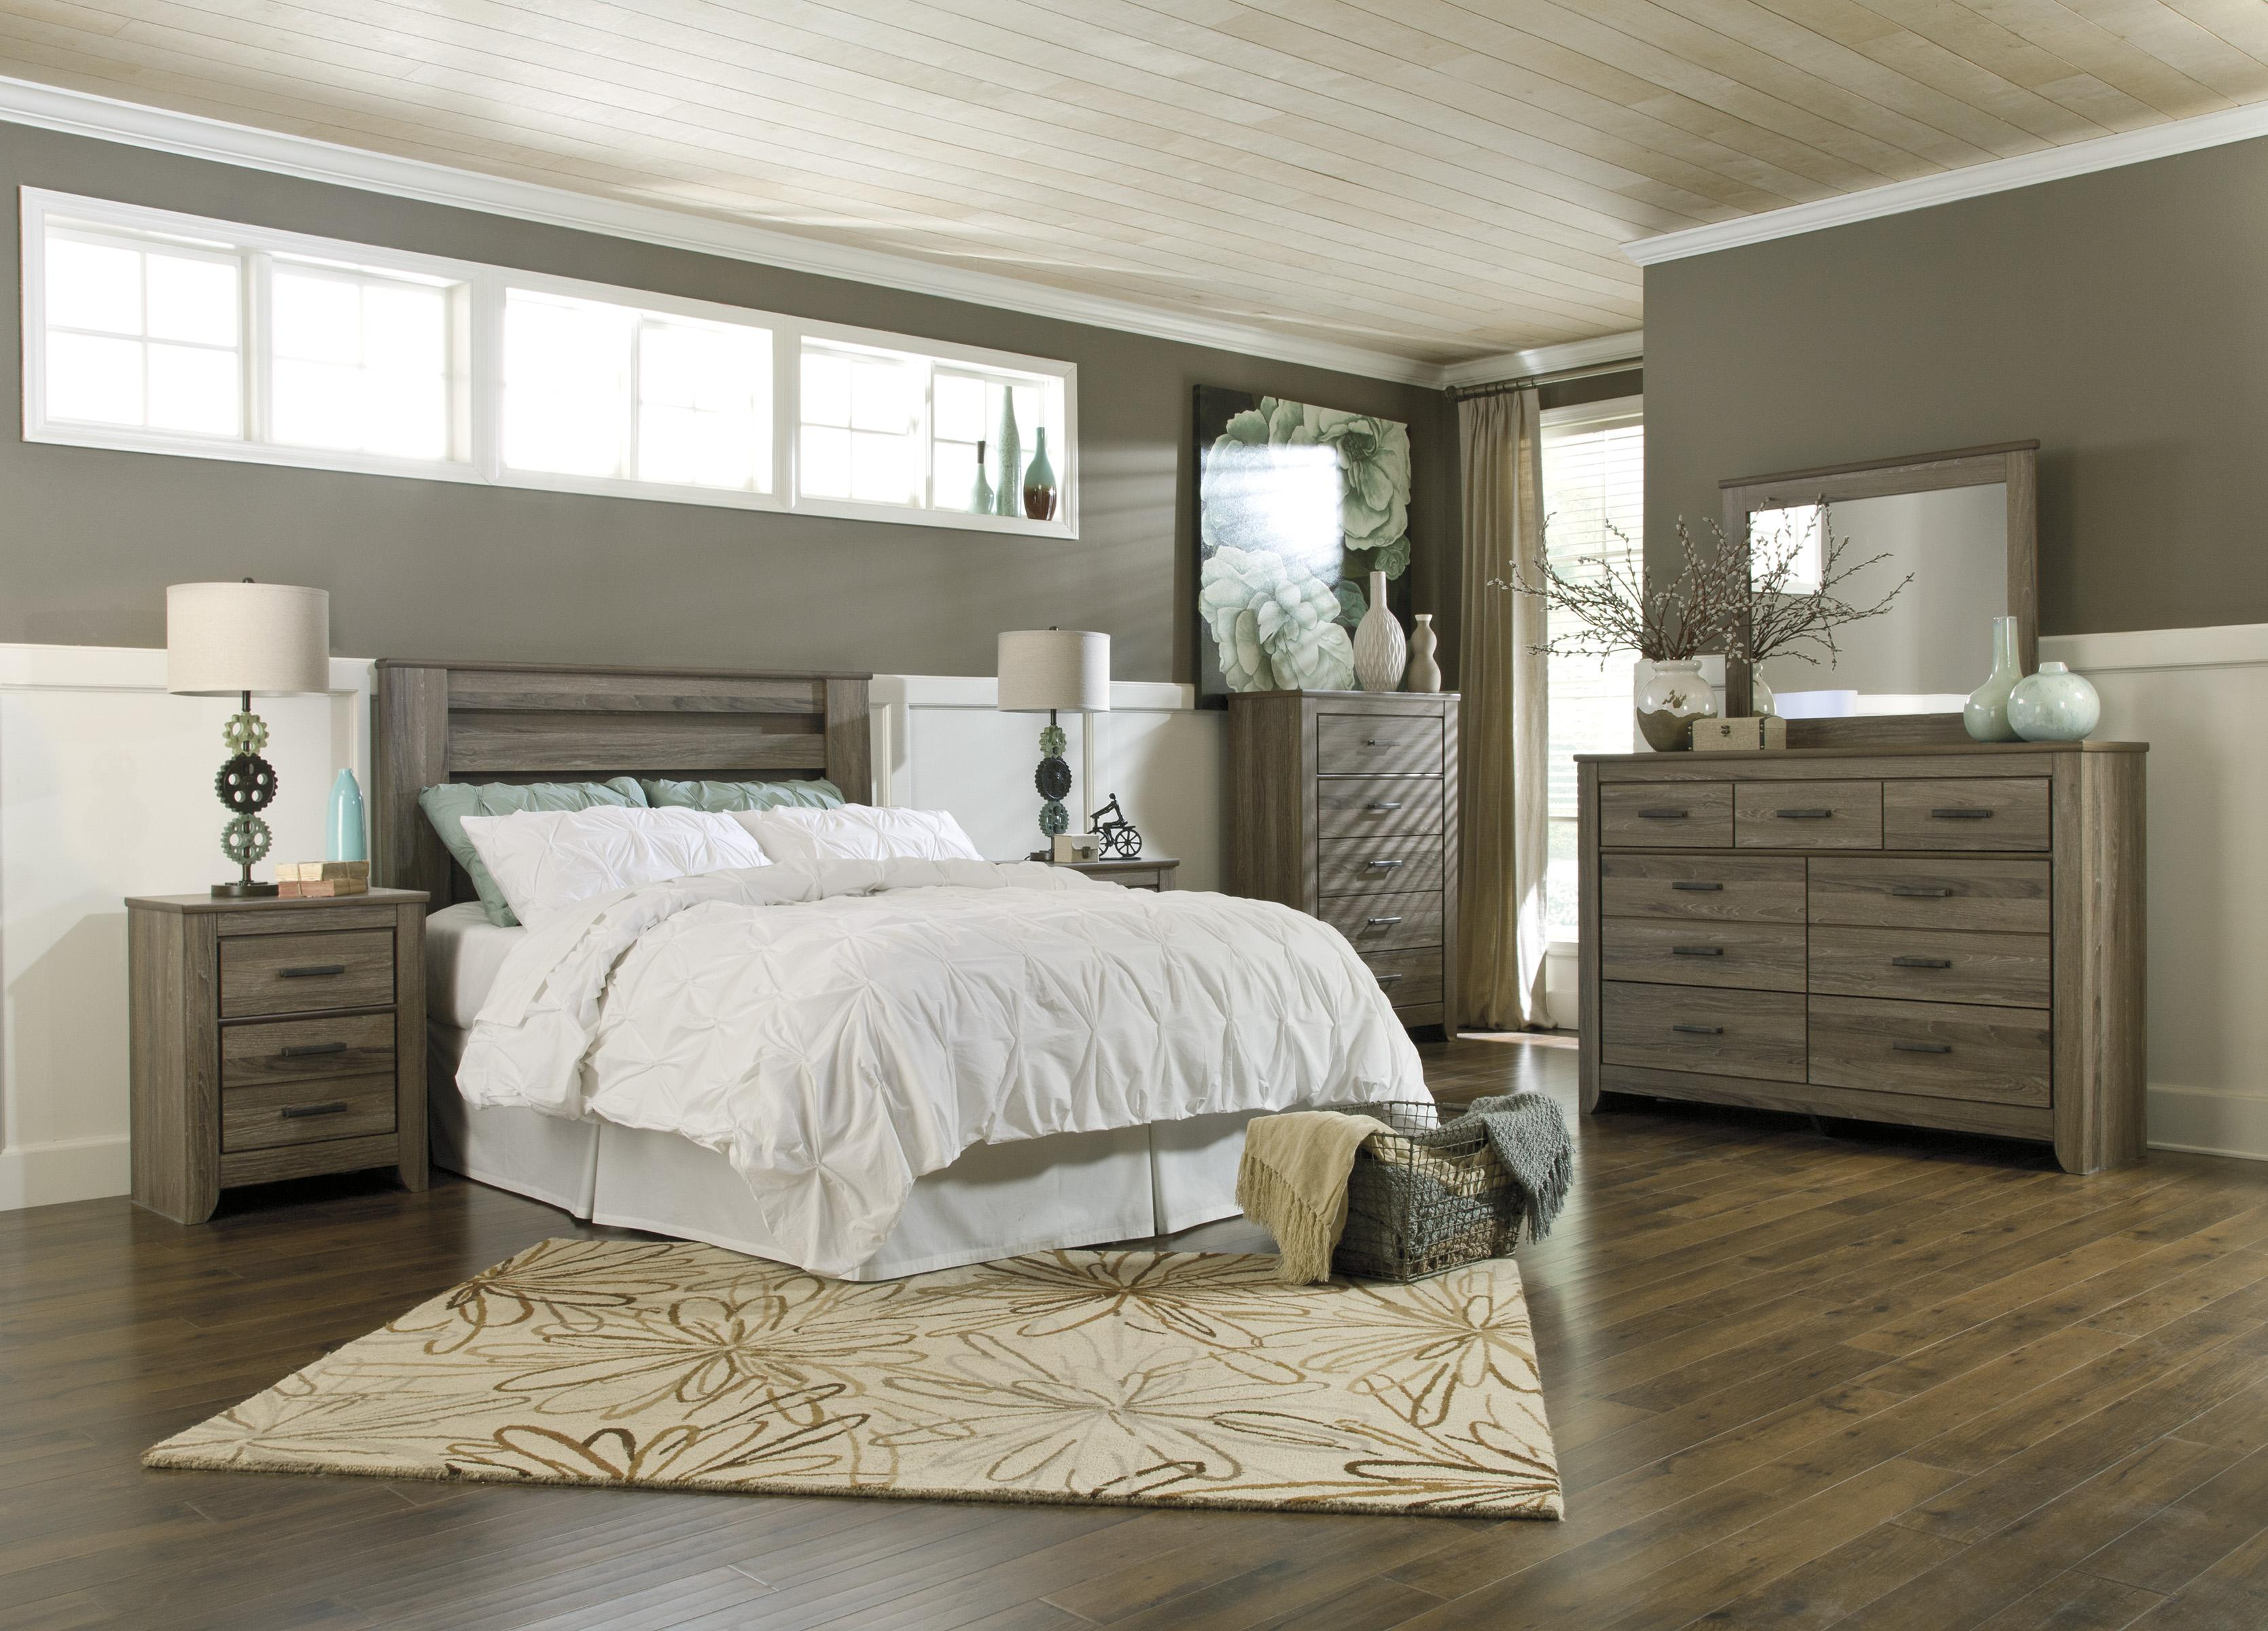 Zelen 7PC FULL/QUEEN BEDROOM GROUP by Signature Design by Ashley at Value City Furniture